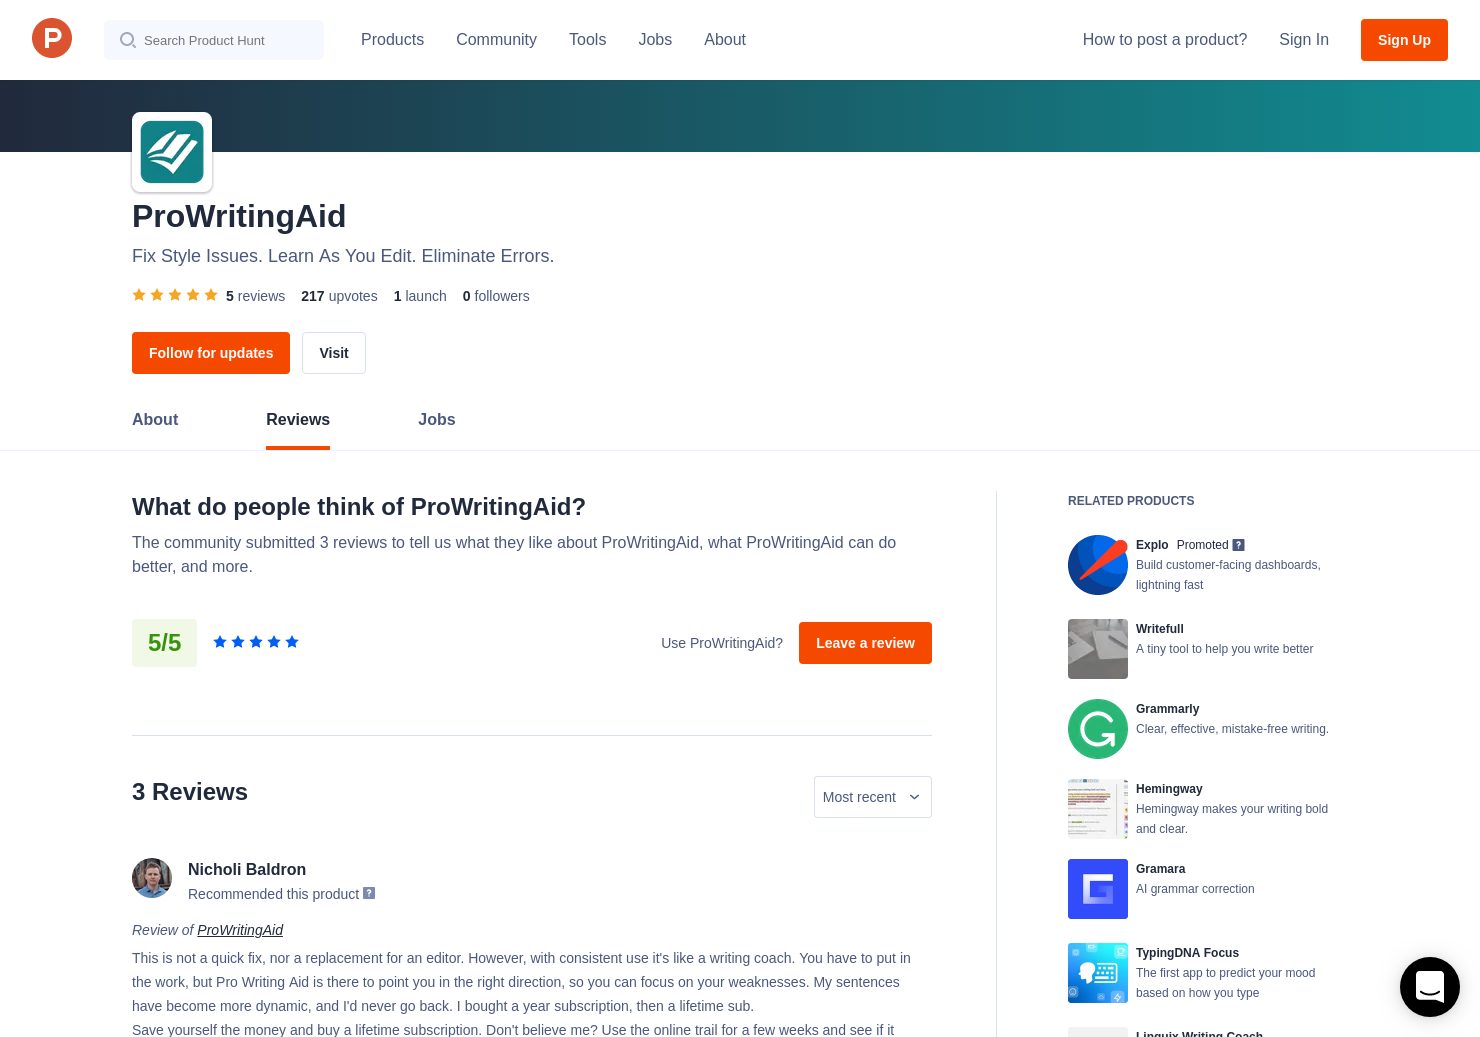 Patricia L  Gantt's review of ProWritingAid - Product Hunt